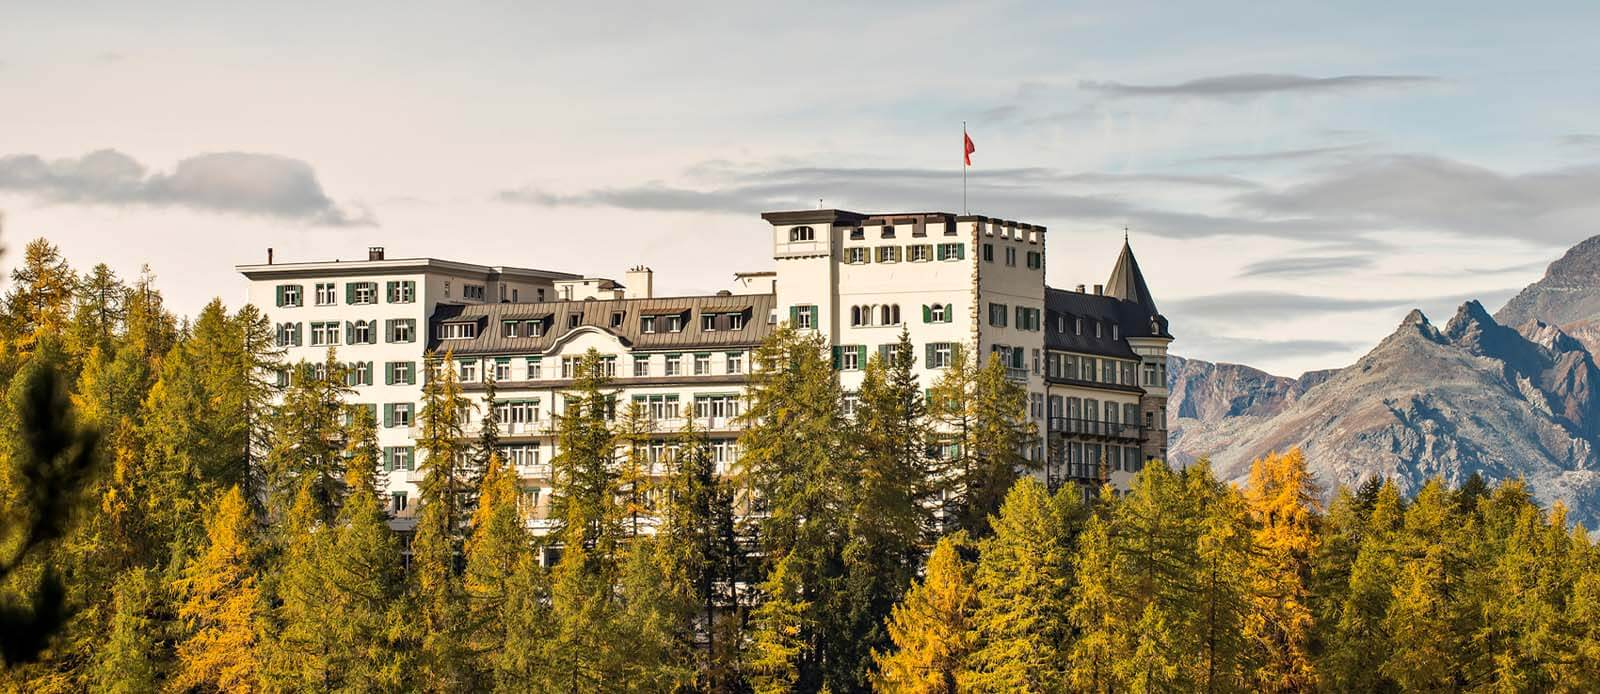 Discover the amazing architecture of the Hotel Waldhus Sils.